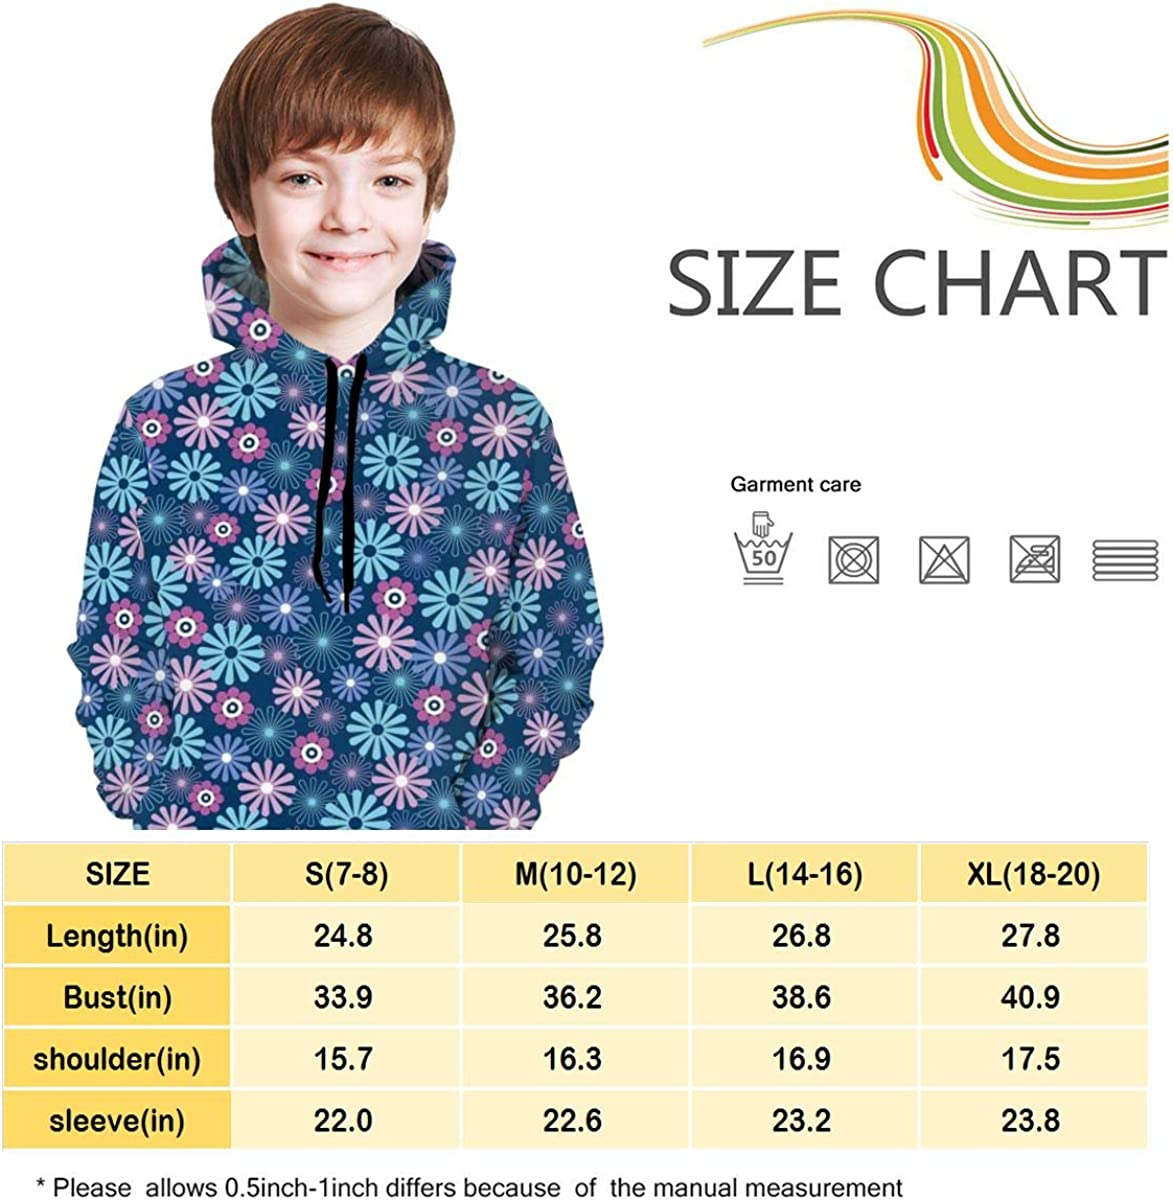 3D Print Pullover Hoodies with Pocket Daisy Flower Soft Fleece Hooded Sweatshirt for Youth Teens Kids Boys Girls 7-20 Years